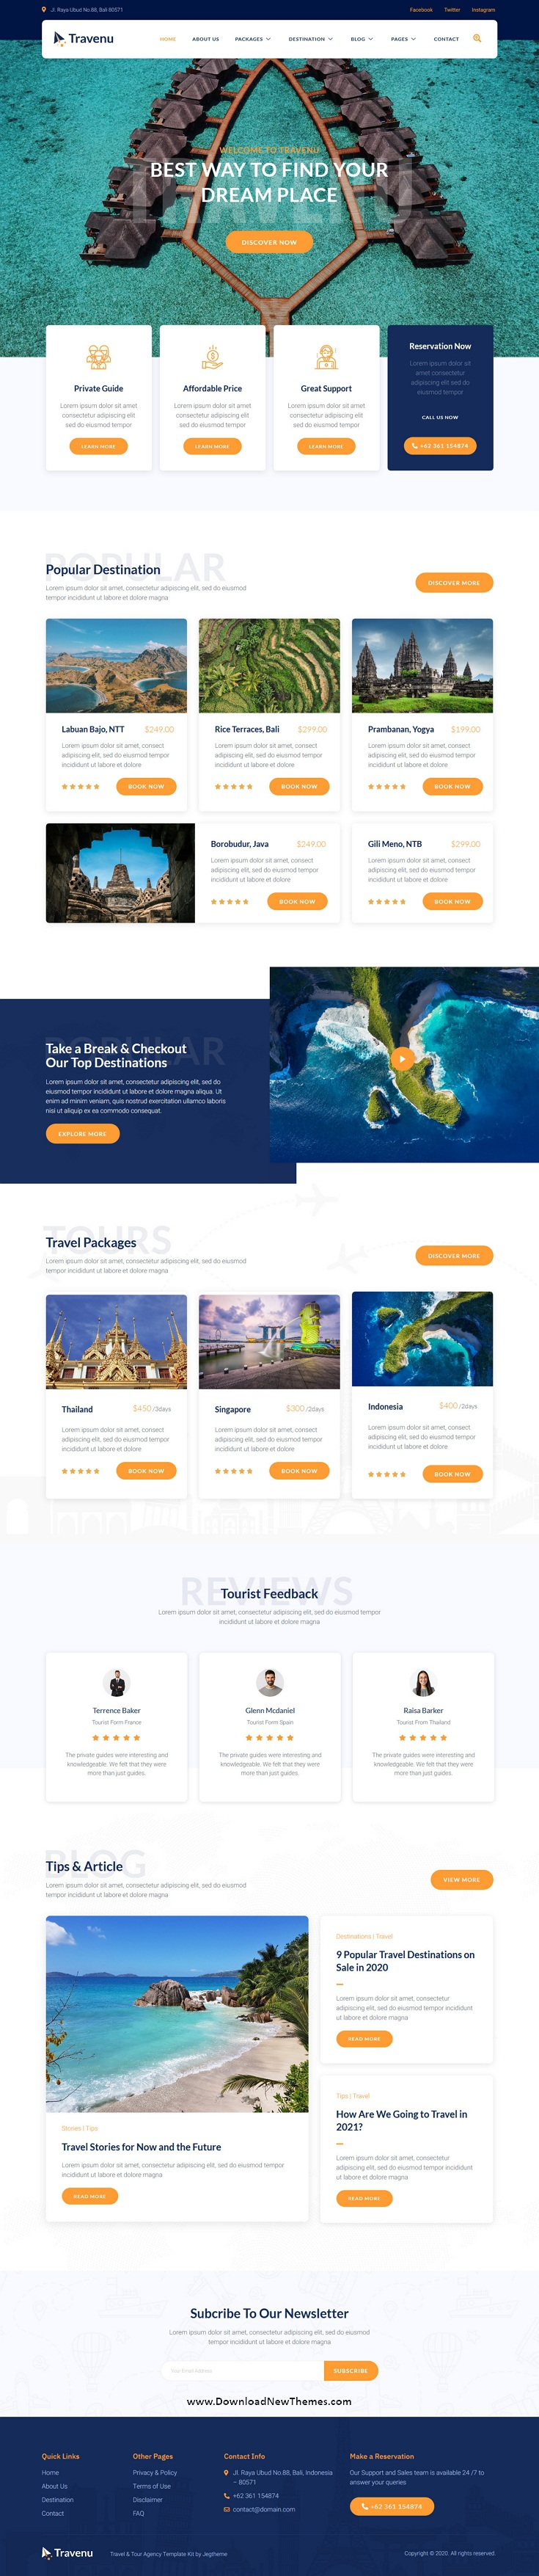 Travel and Tour Agency Website Template